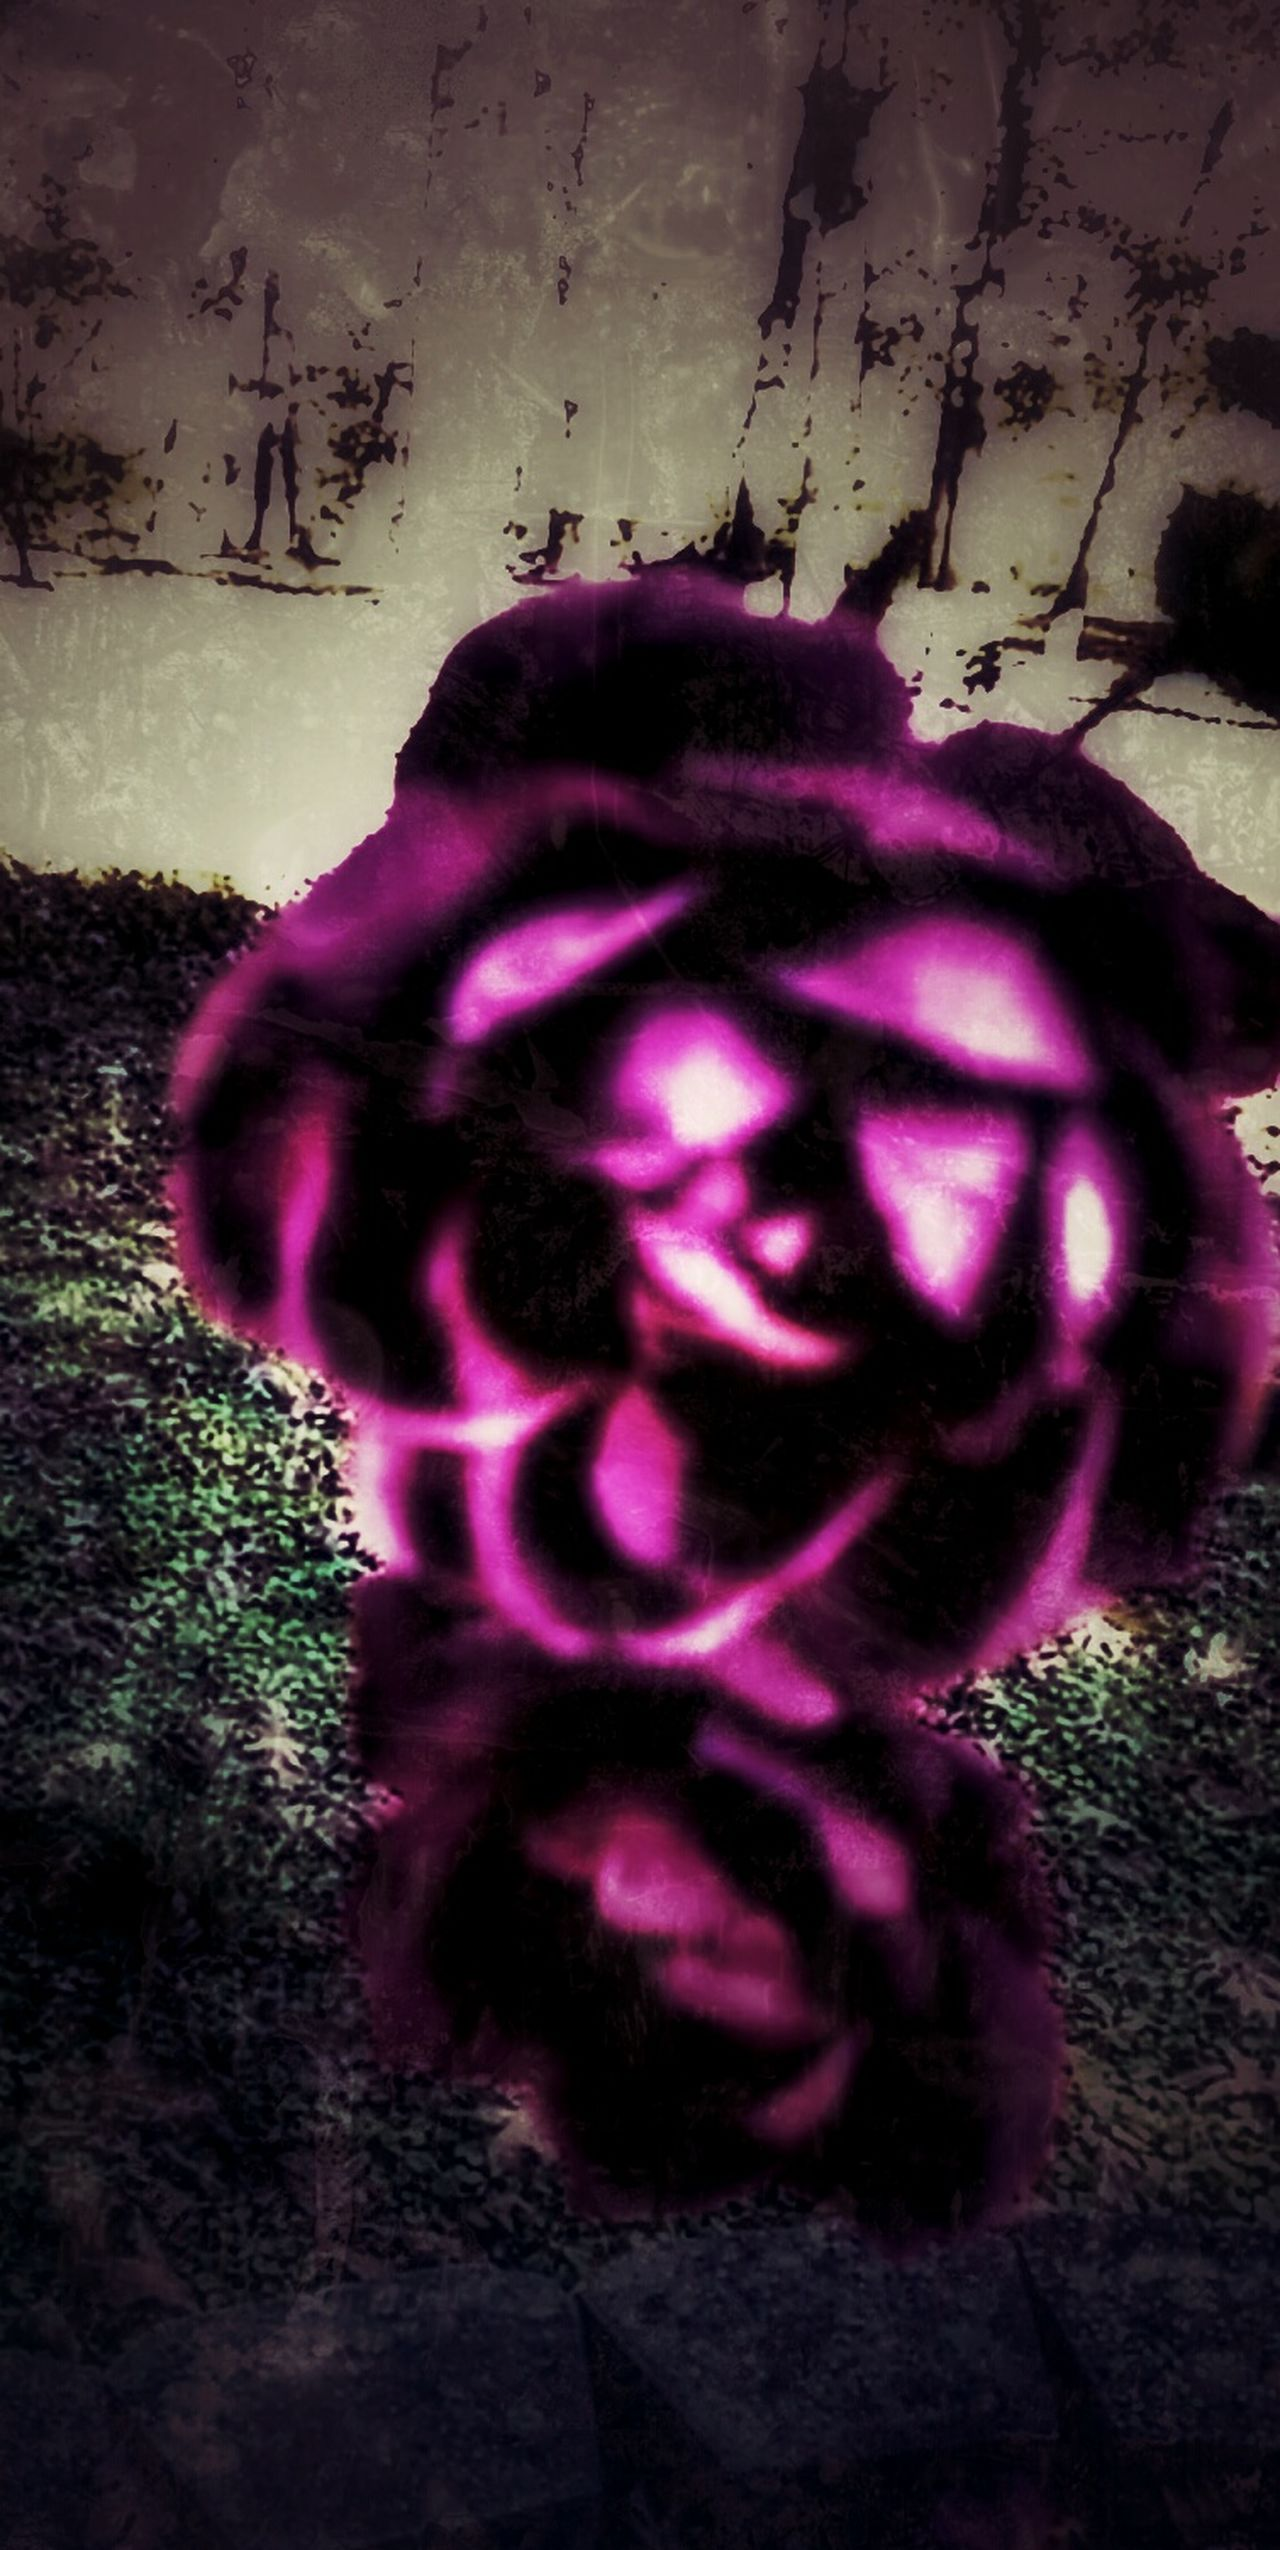 """https://youtu.be/lLRU82vMpcQ """"Turn Off the Tides Under the Norhern Lights"""" The Impurist Kiss From A Rose Fragility Flowerporn Abstract Beauty In Nature Darkness And Life Vintage Eyes We Are Nature Home Tree Home Musical Photos Lyricalartistry Asaf Avidan"""